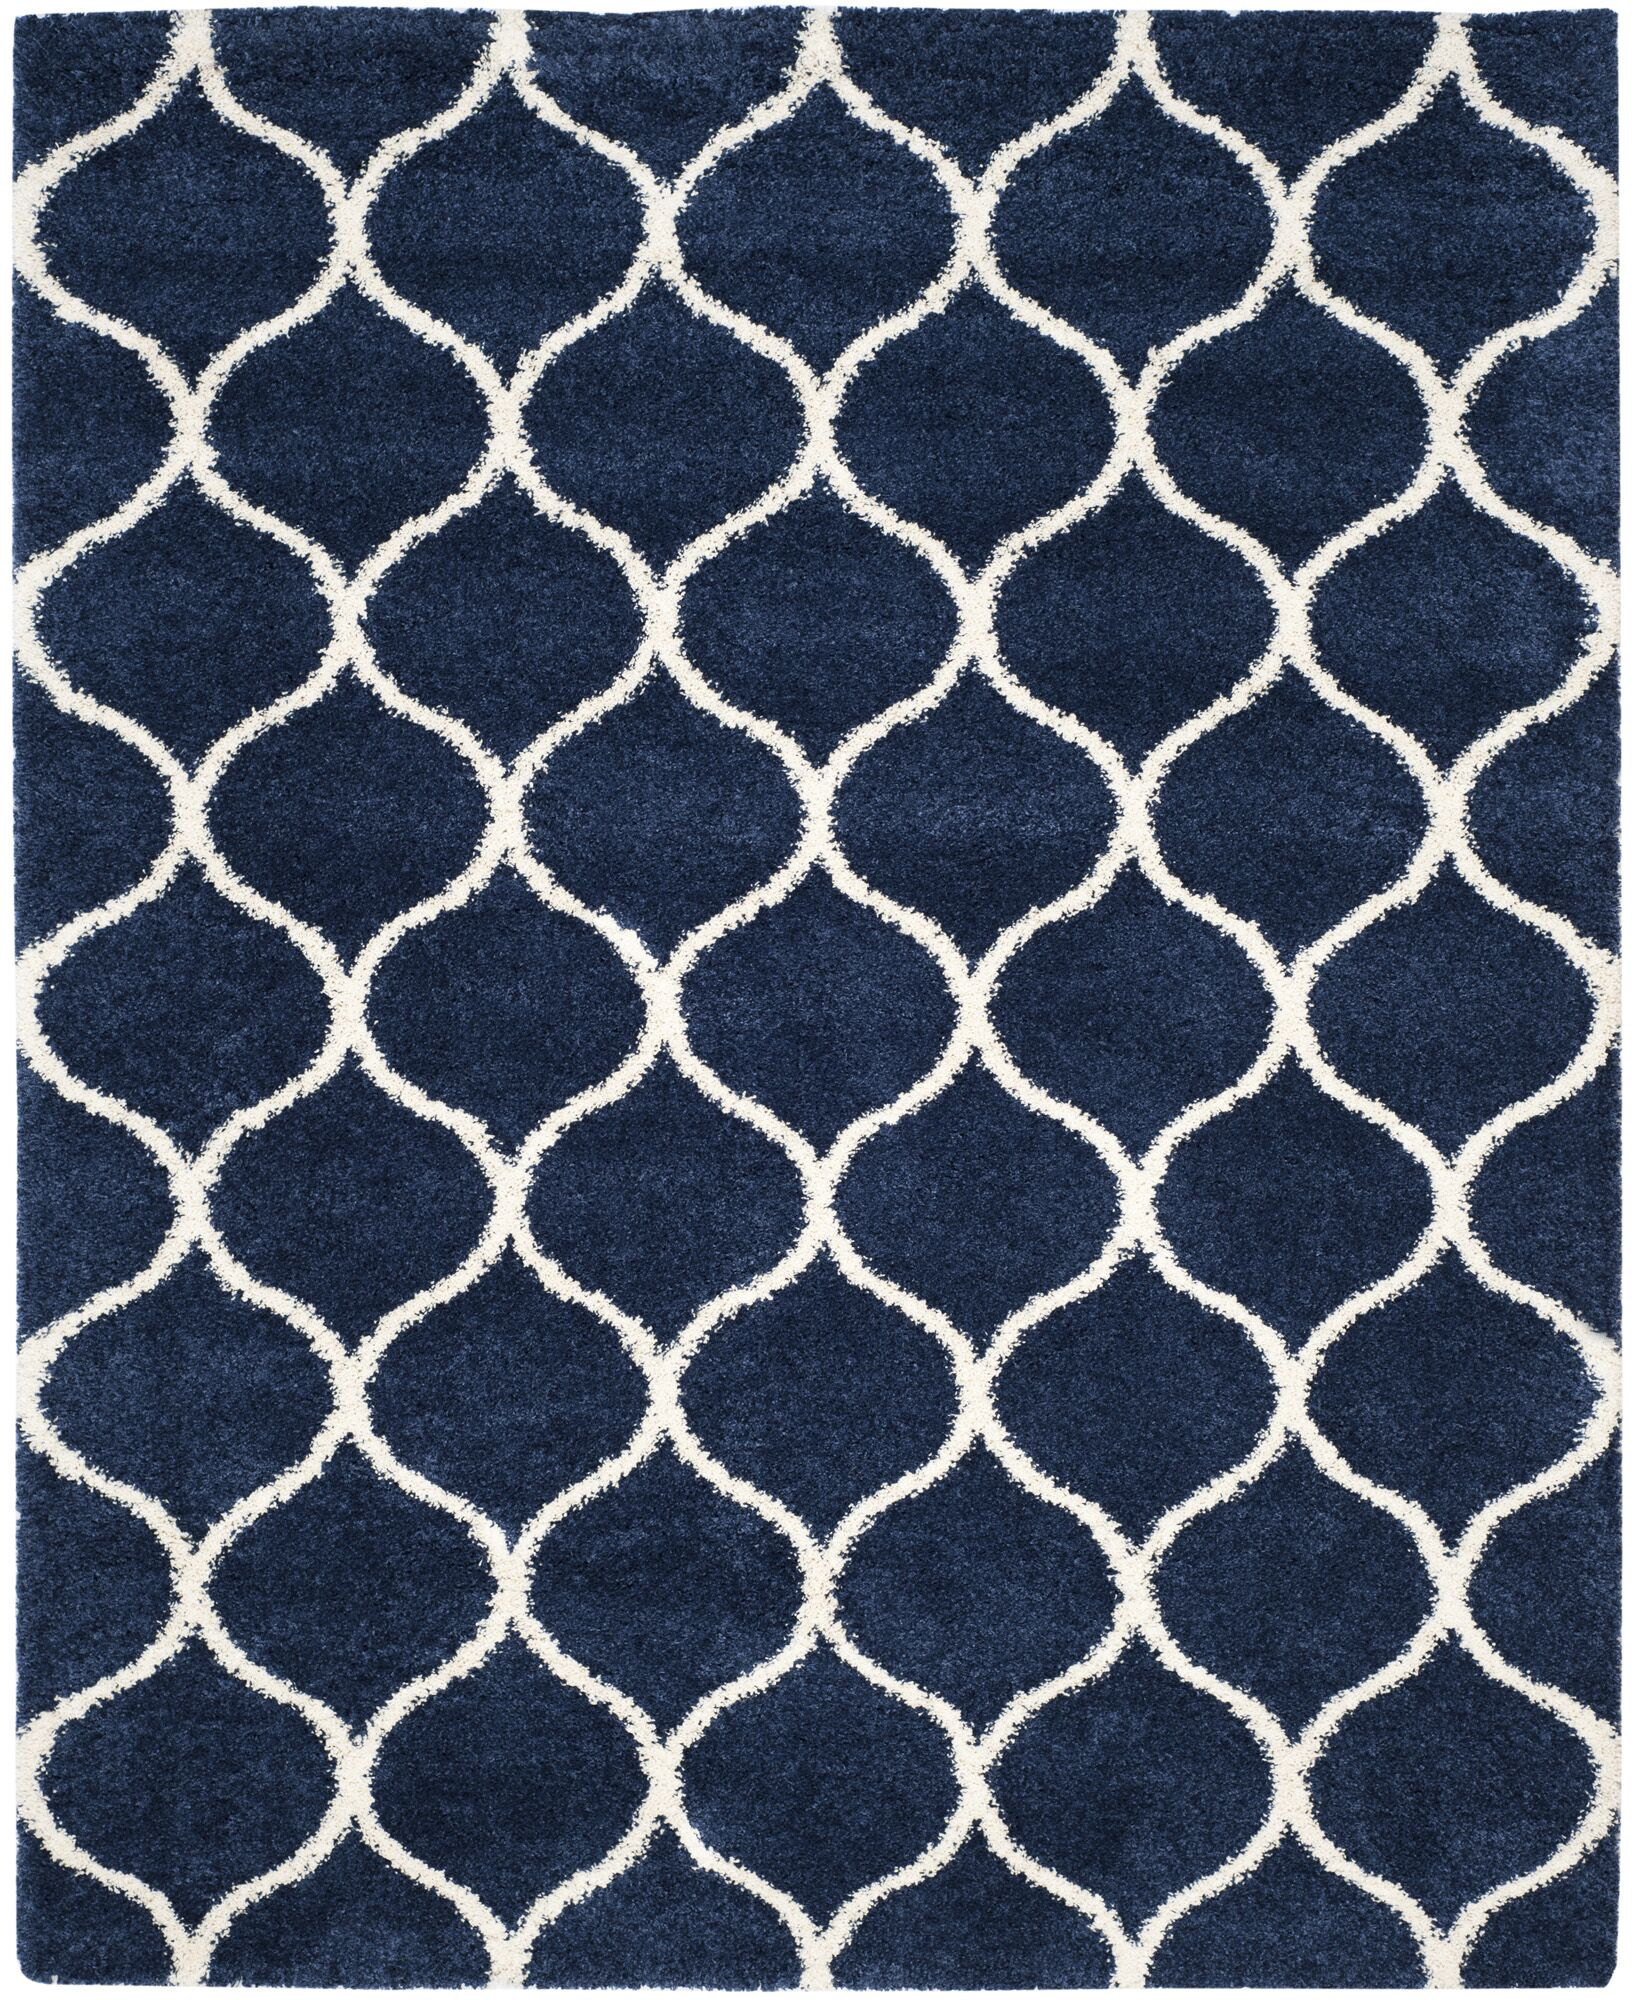 Duhon Shag Navy/Ivory Area Rug Rug Size: Rectangle 8' x 10'